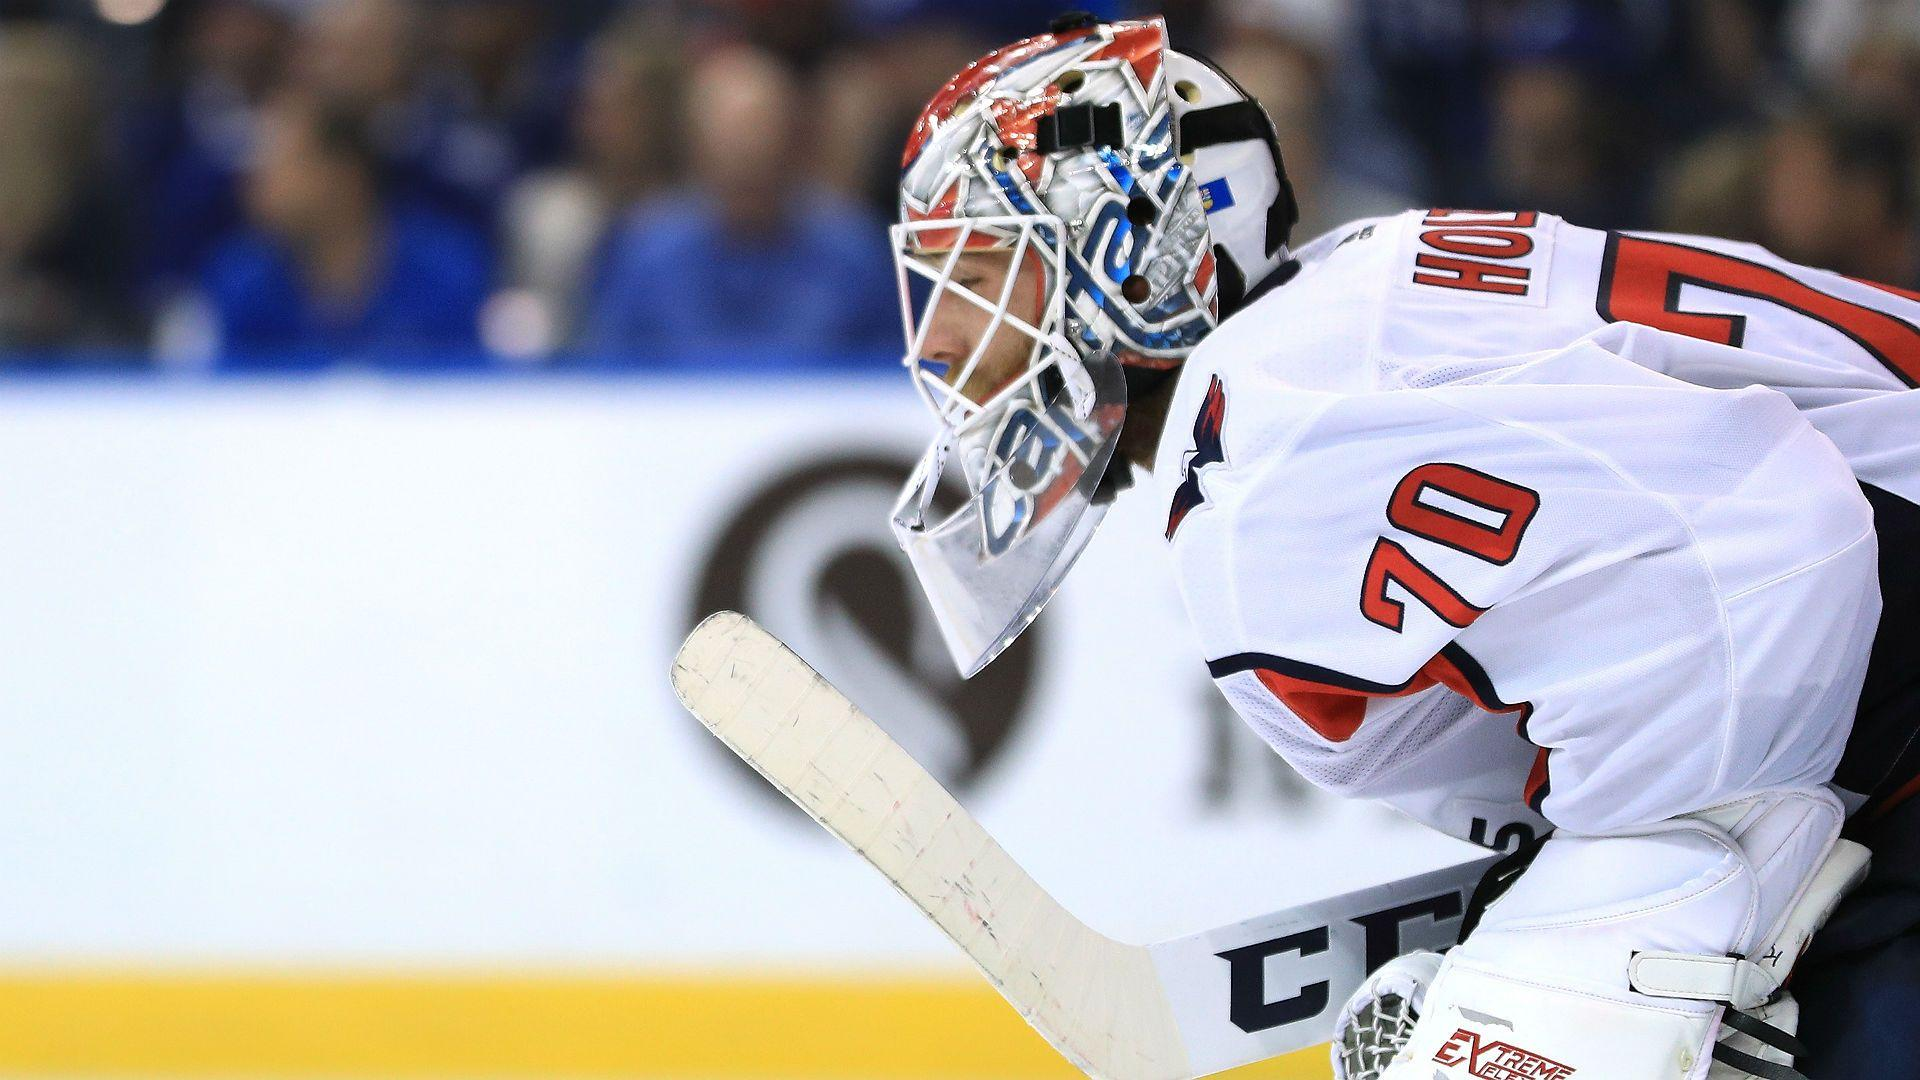 NHL playoffs 2018: Braden Holtby putting up sterling numbers